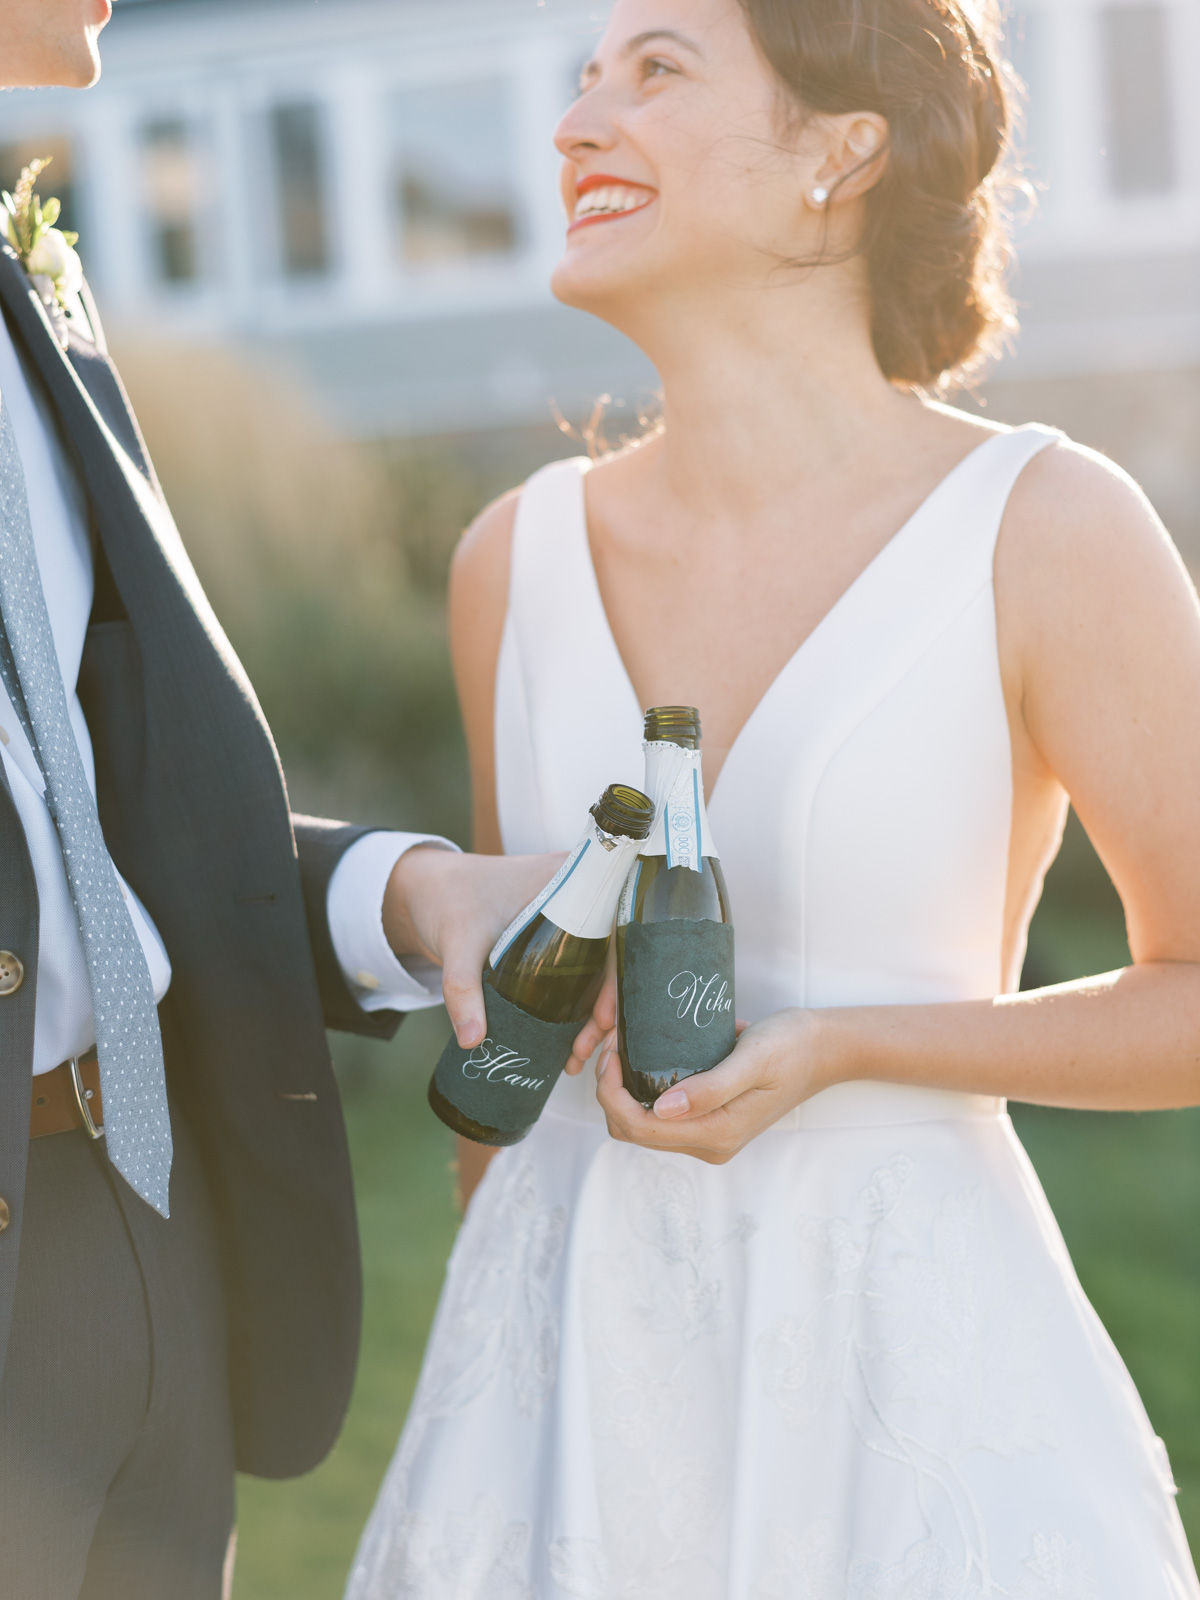 bride smiling at groom holding personal sized champagne bottles